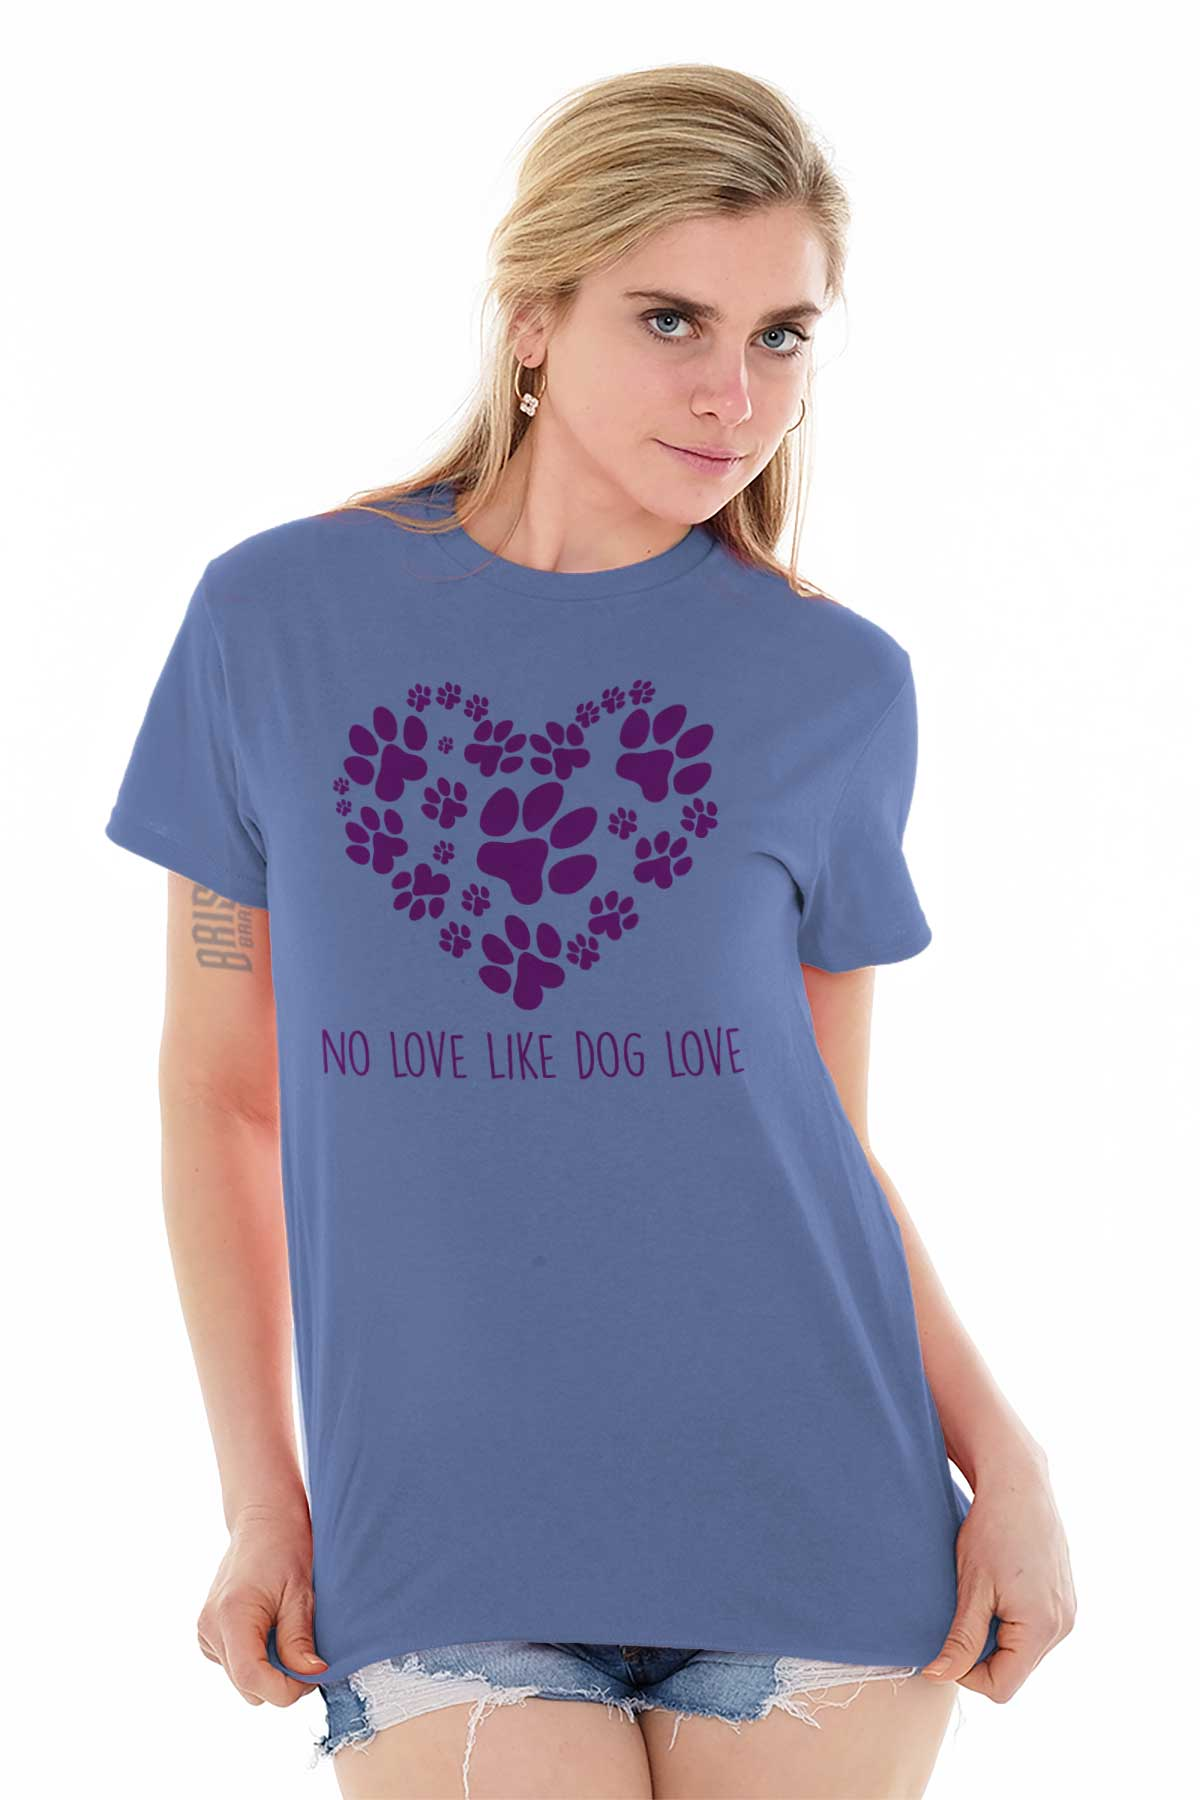 All You Need is Love Women/'s V-Neck T-Shirt Dog Best Friend Doggie Paw Adopt